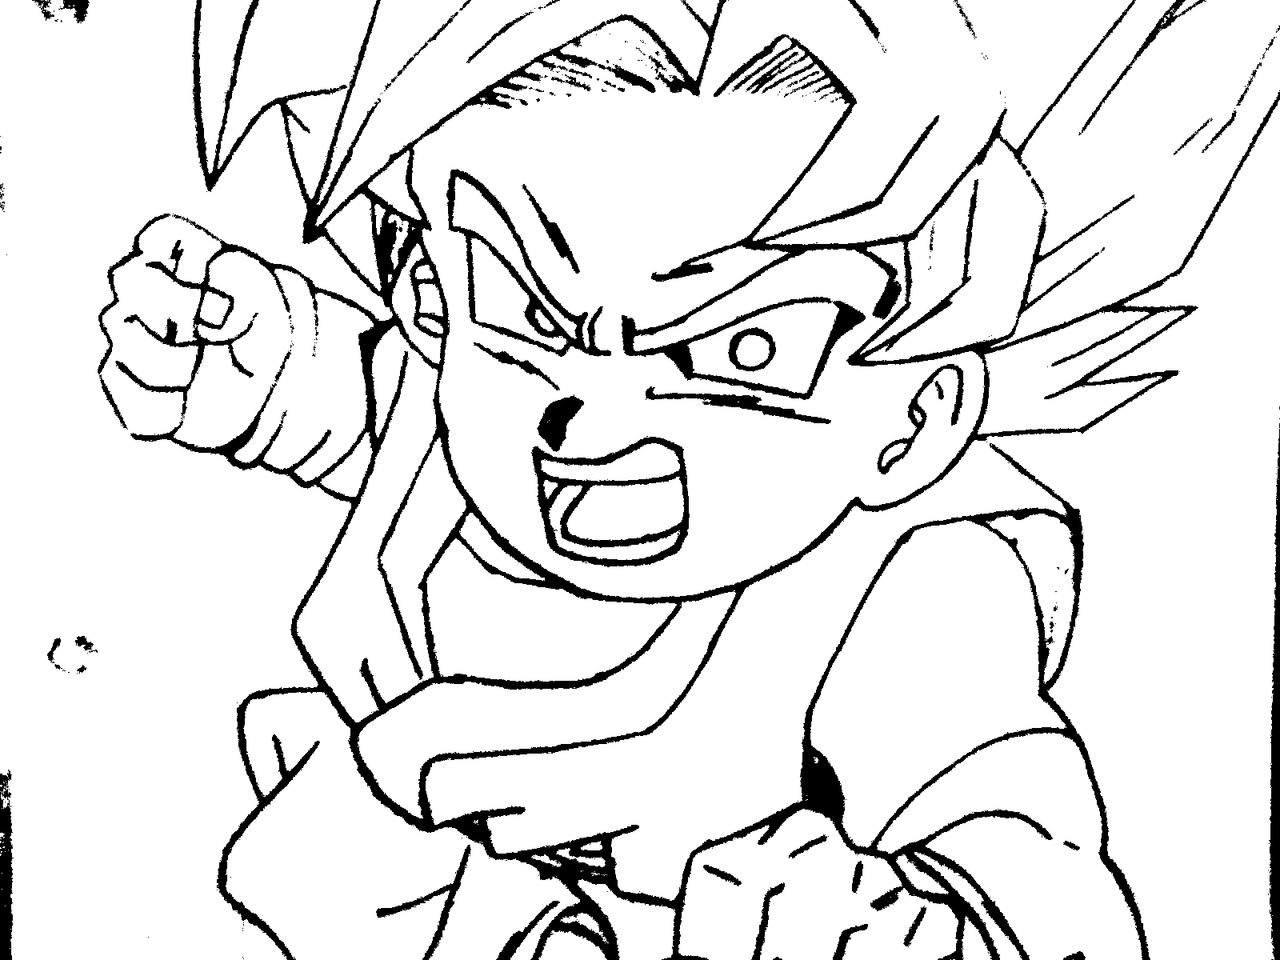 Goku Pequeño Para Colorear: Goku Jr Saiyan Black And White By Ferfurchi88 On DeviantArt